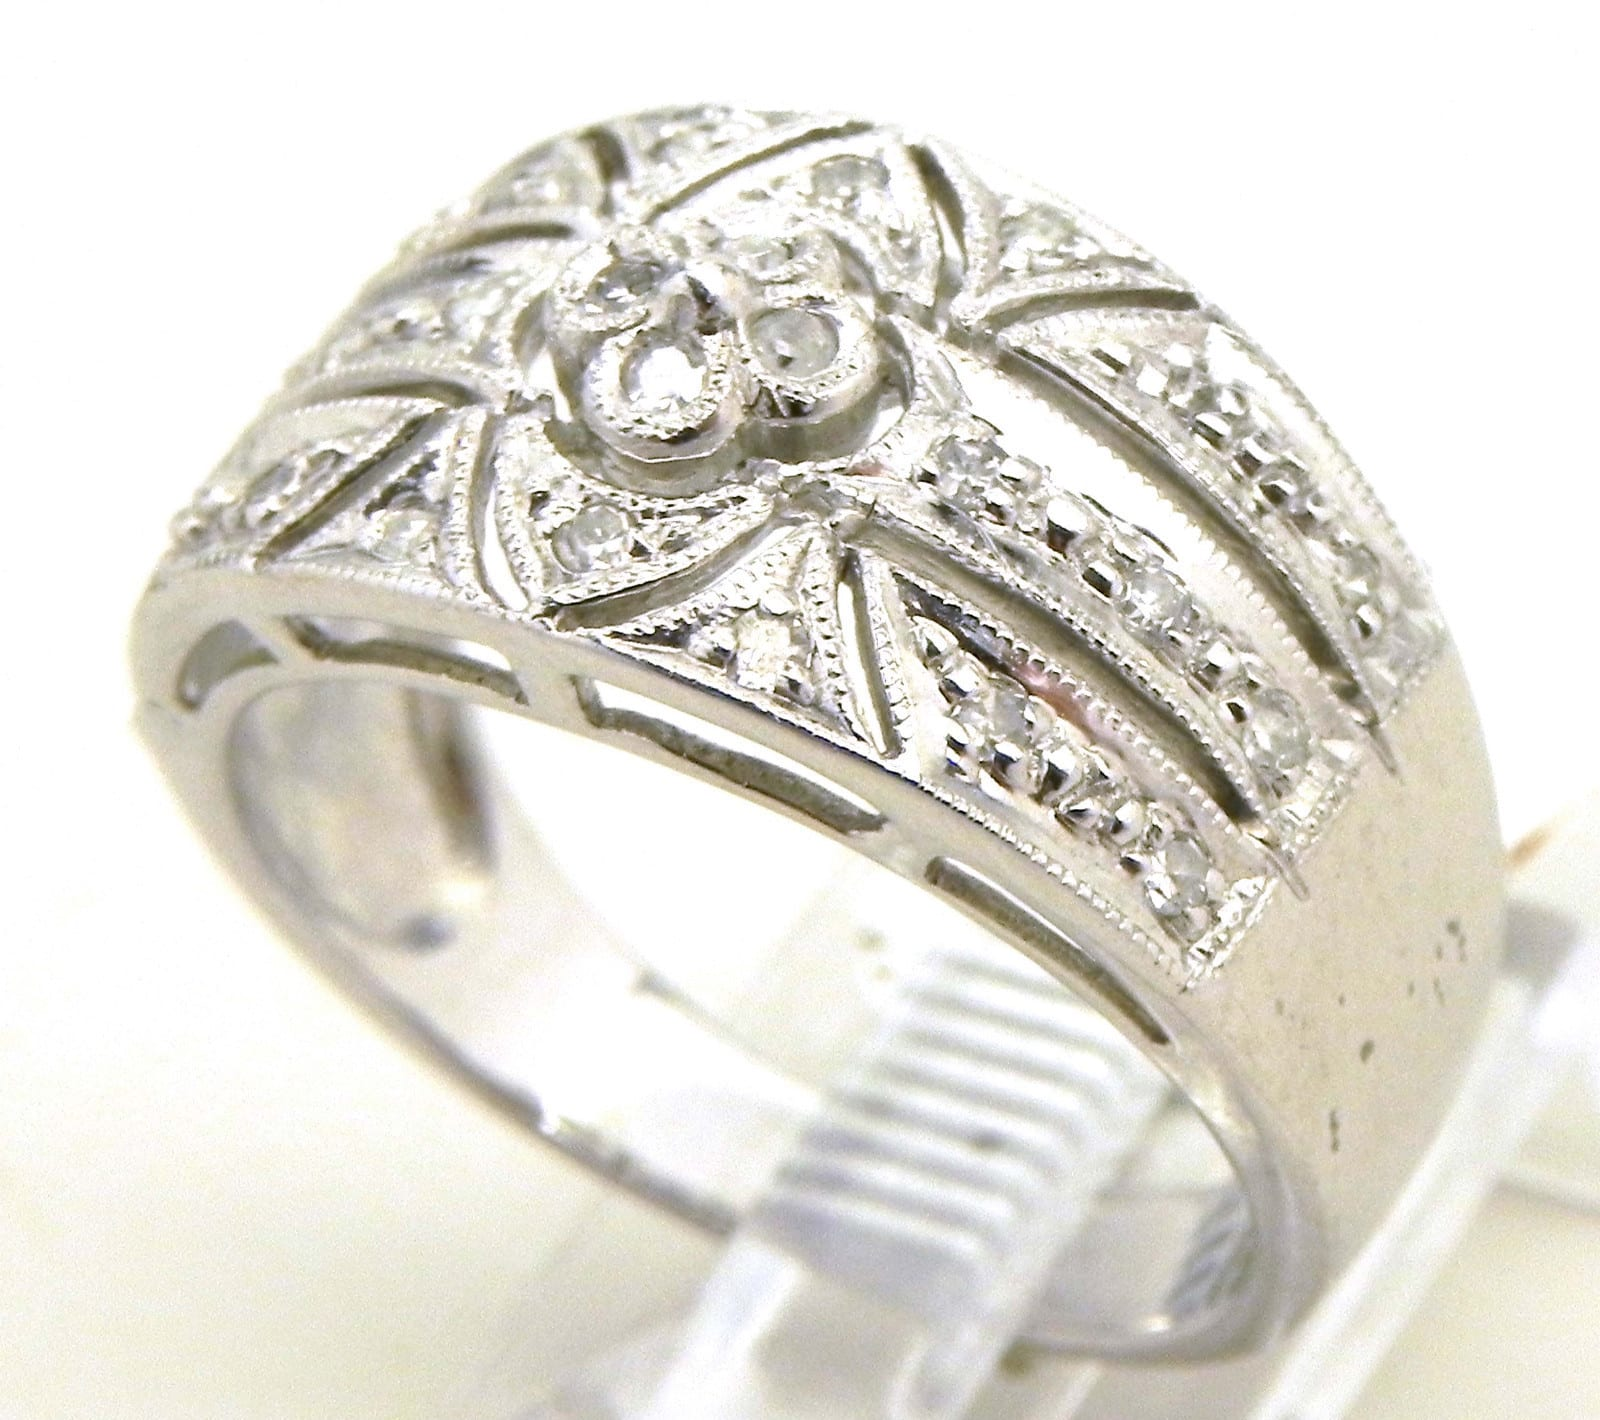 Ladies 14k White Gold Amp Diamond Filigree Band Ring